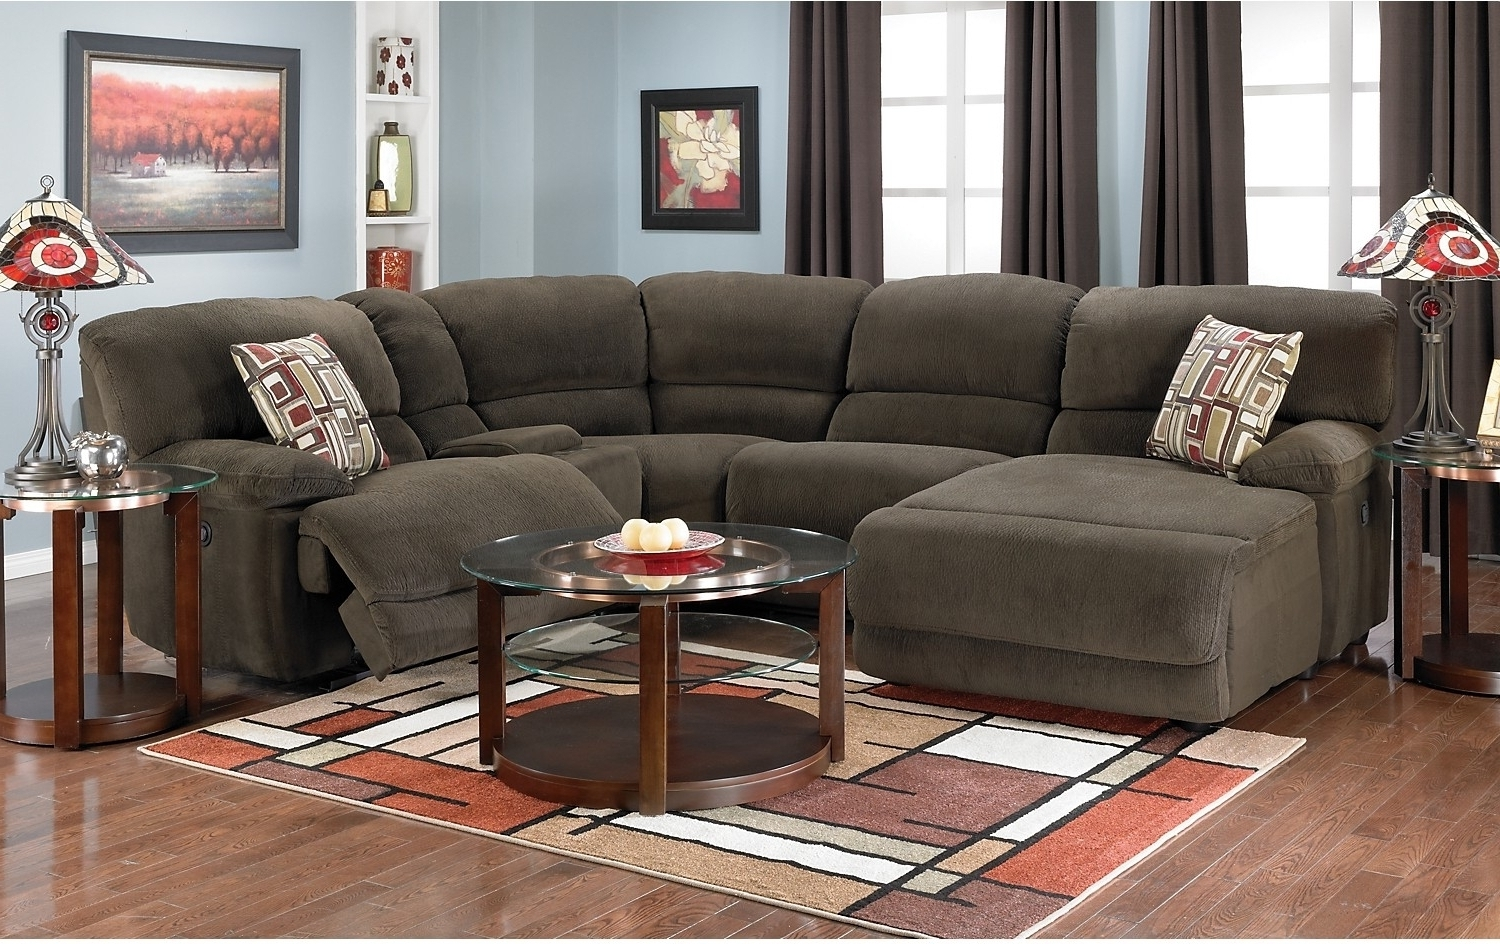 Sectional Sofas At Brick Regarding 2017 Elegant The Brick Sectionals – Buildsimplehome (View 2 of 15)